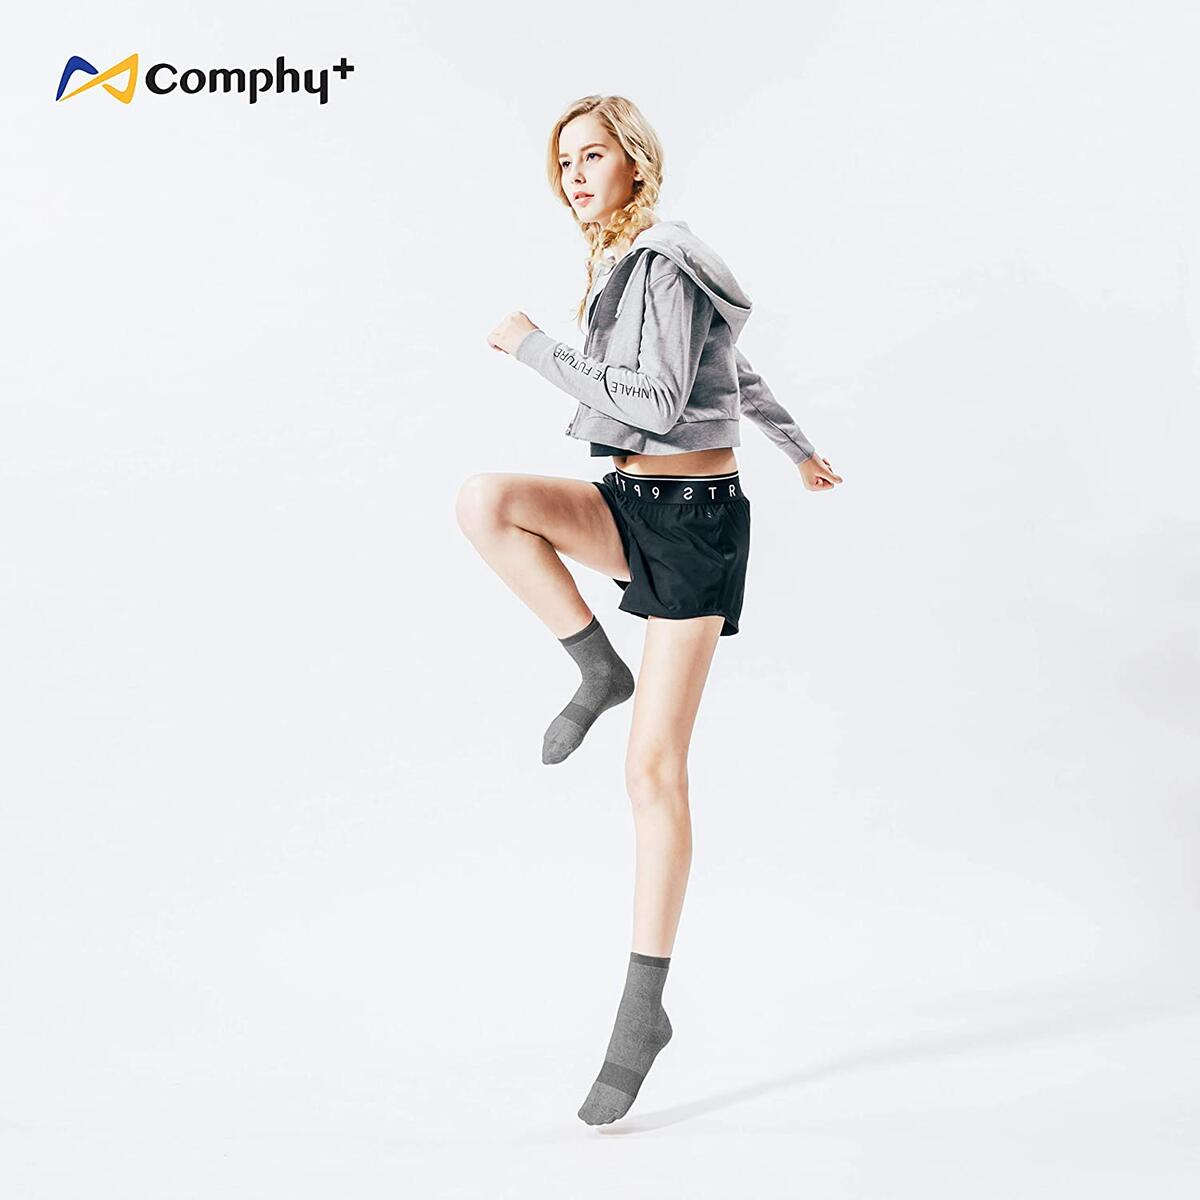 Comphy+ Hiking Socks- Moisture Wicking, Long Distance Socks, No Cotton,Men Women Compression Socks